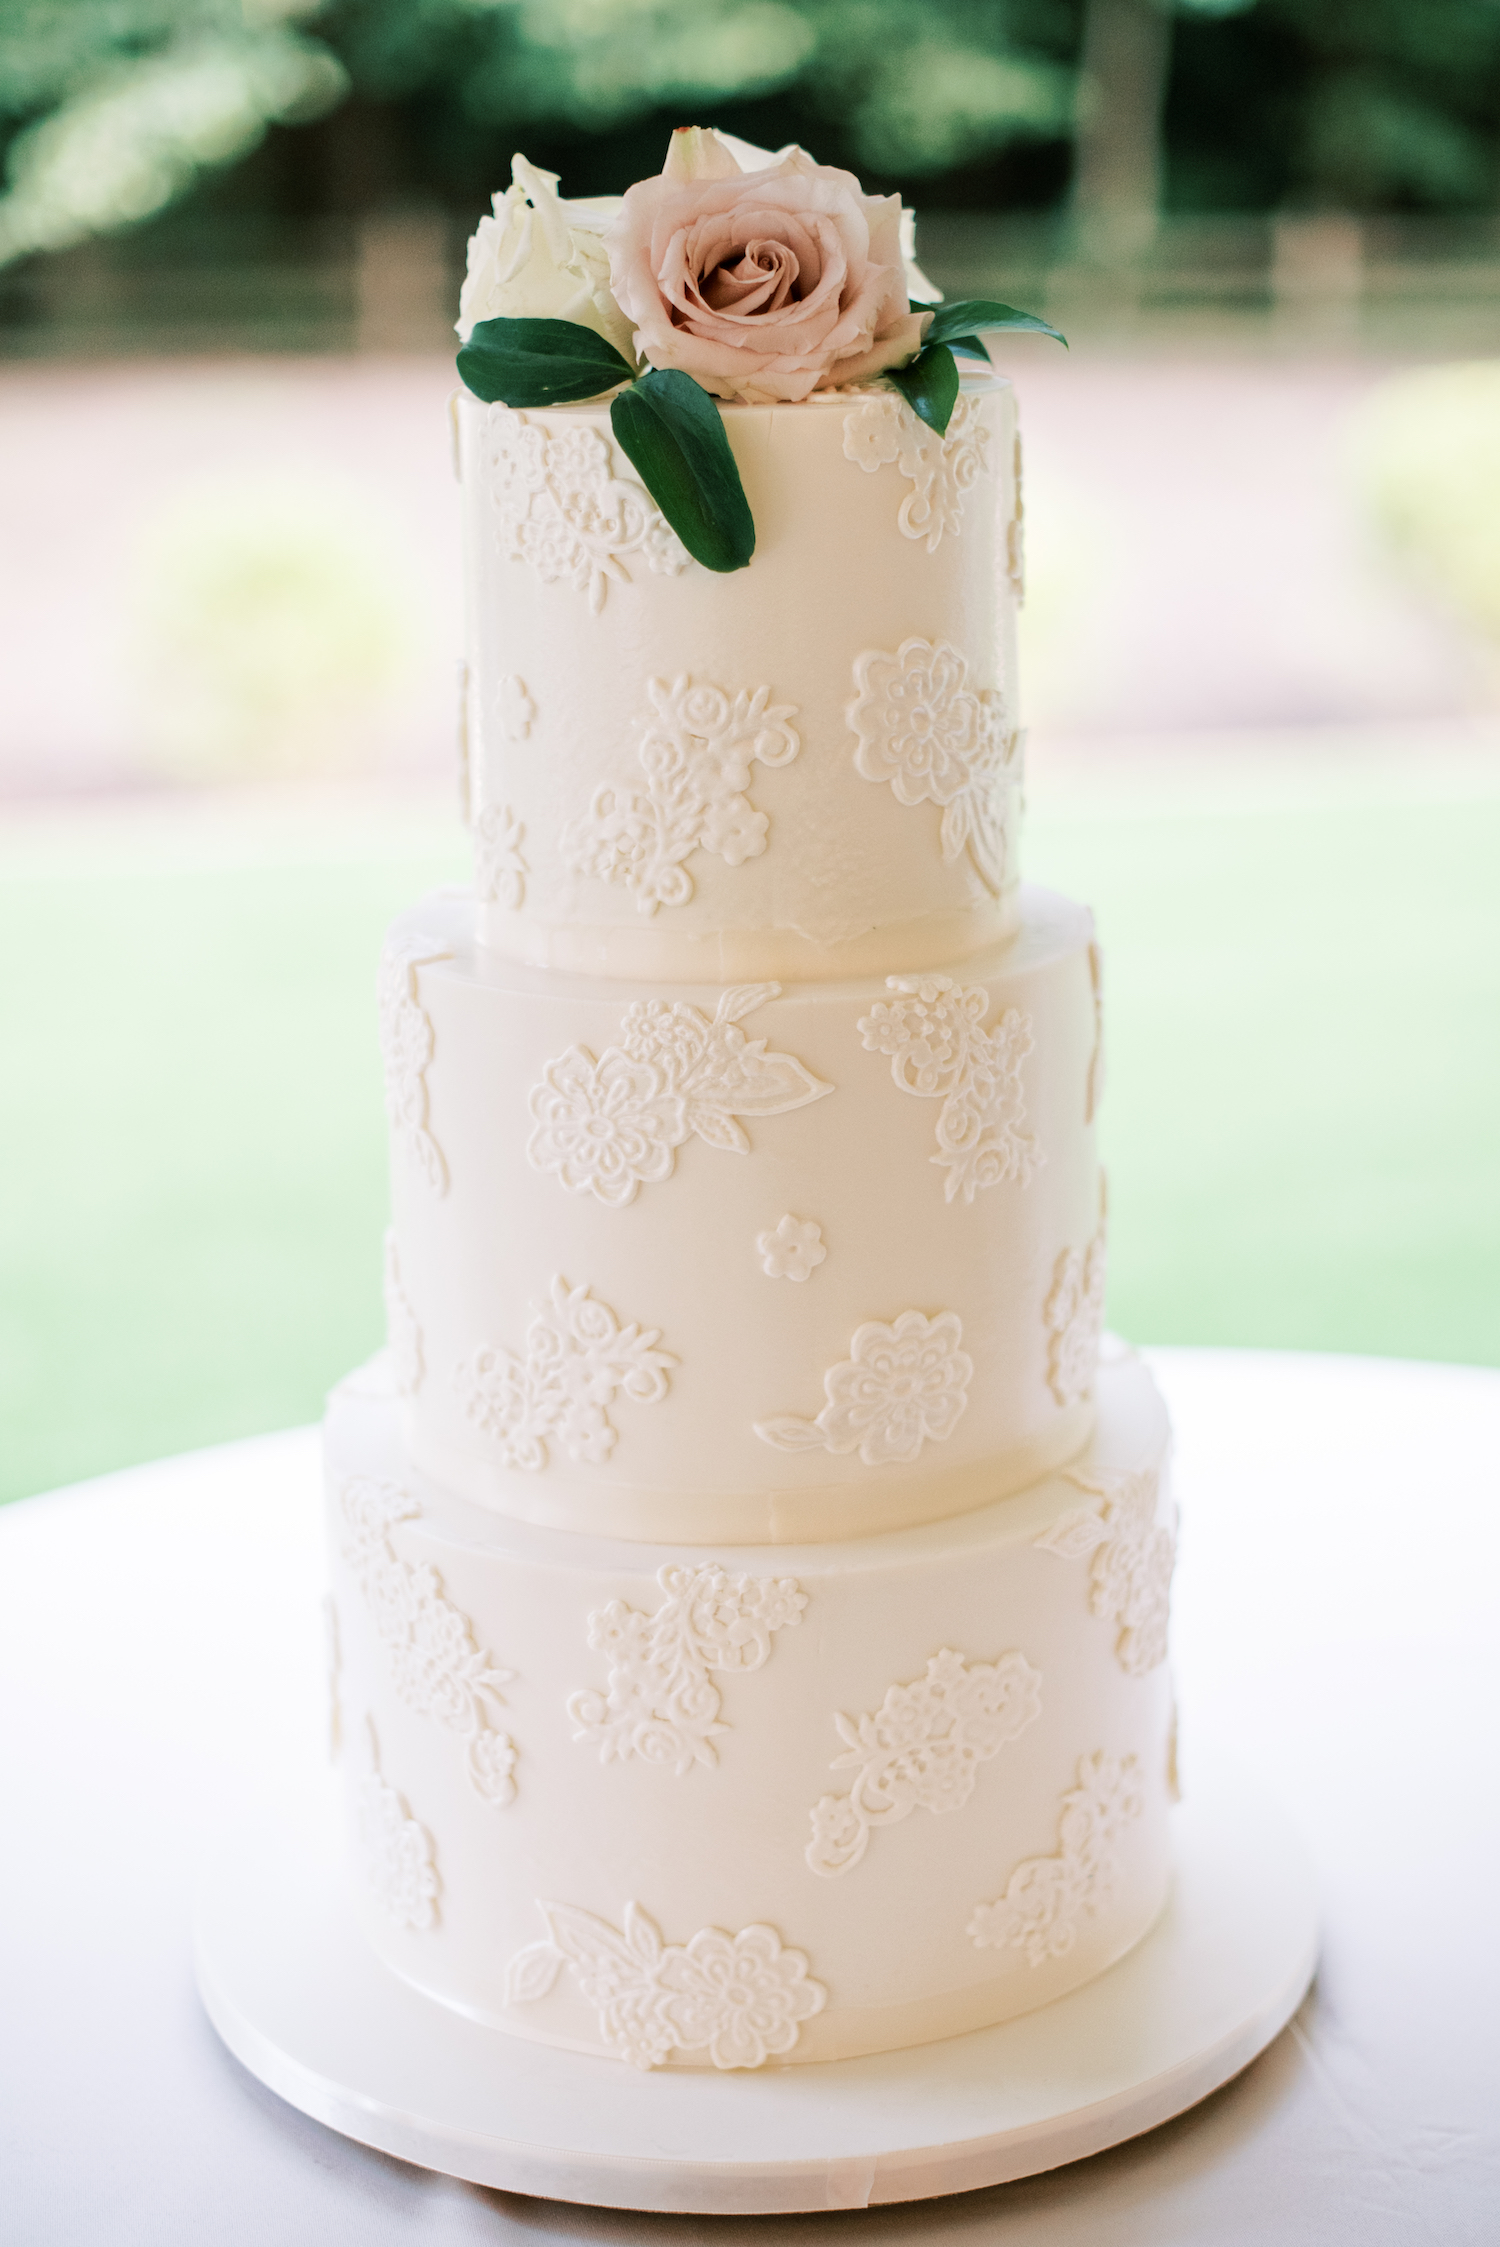 Wedding cake for apple blossom resort wedding